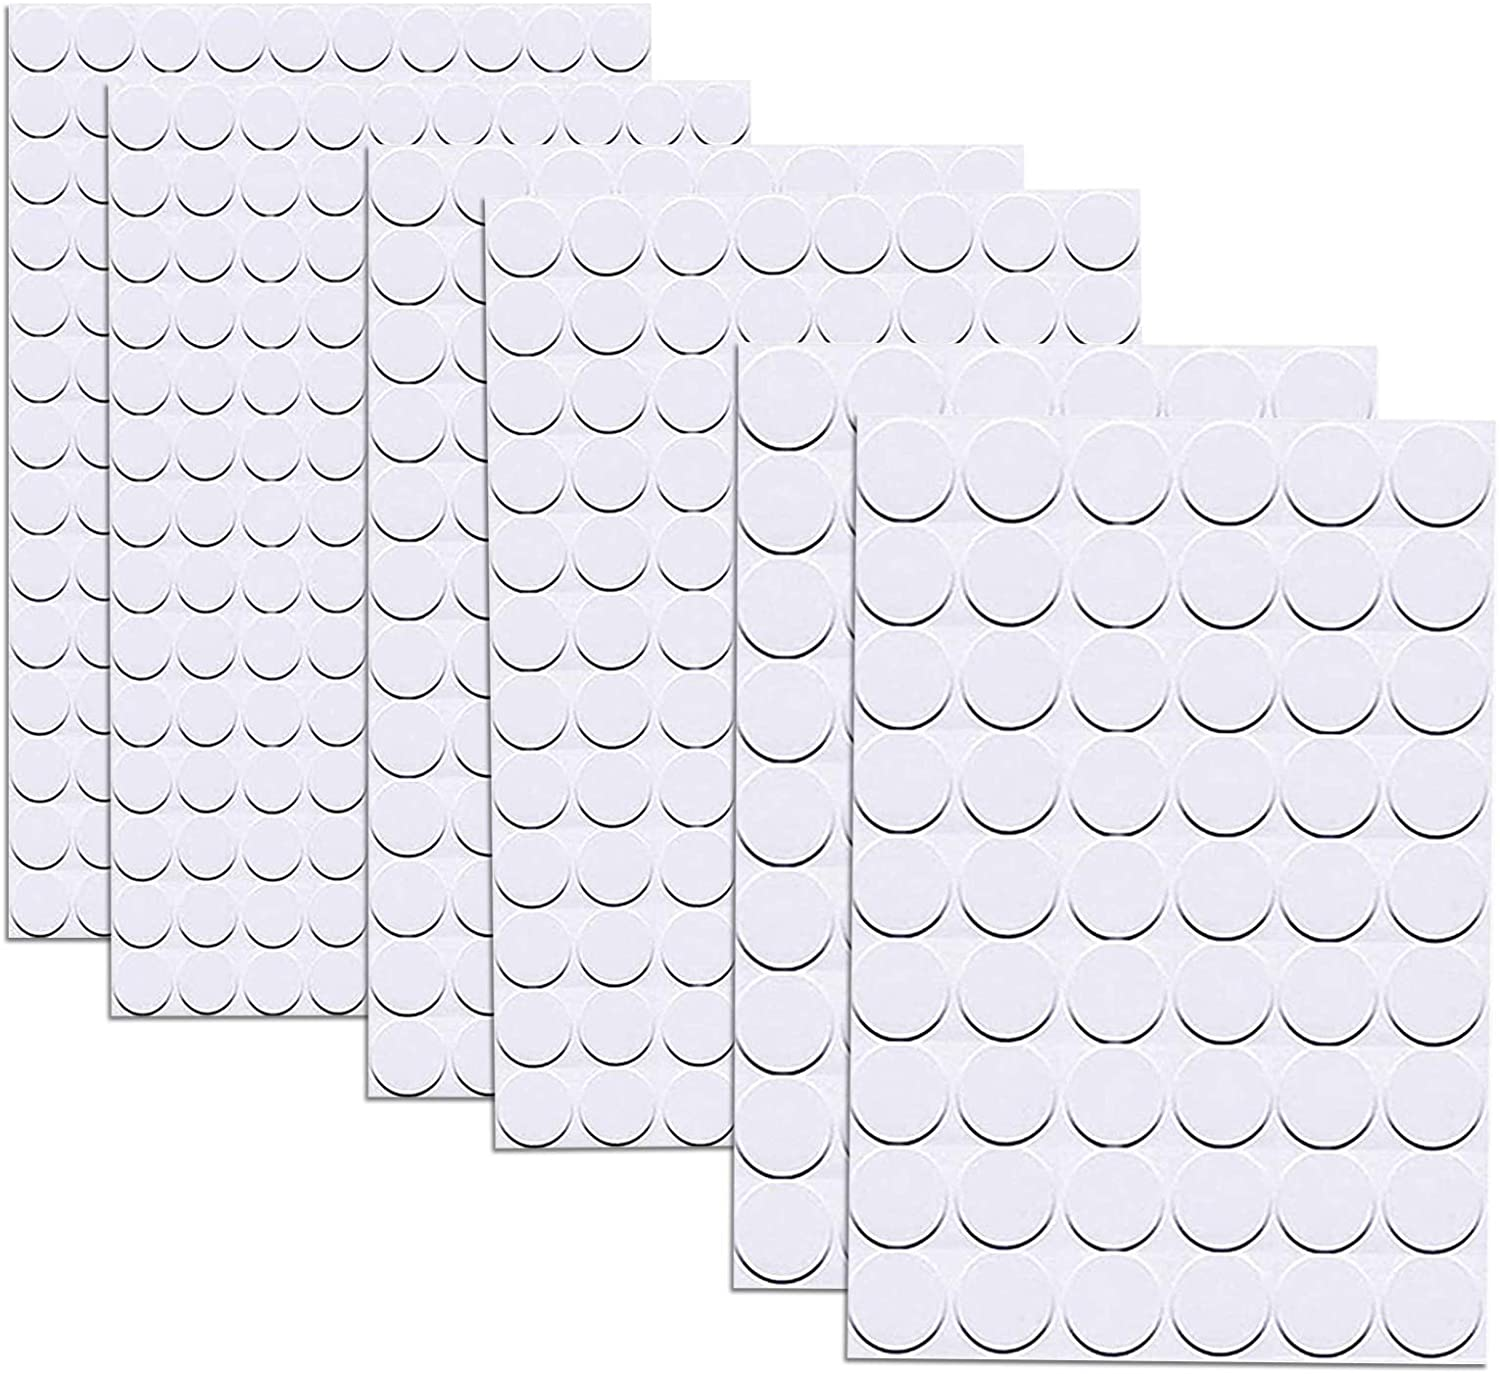 580 Pcs Self-Adhesive Screw Hole Stickers,6-Table Self-Adhesive Screw Covers Caps Dustproof Sticker 12mm, 15mm, 21mm White